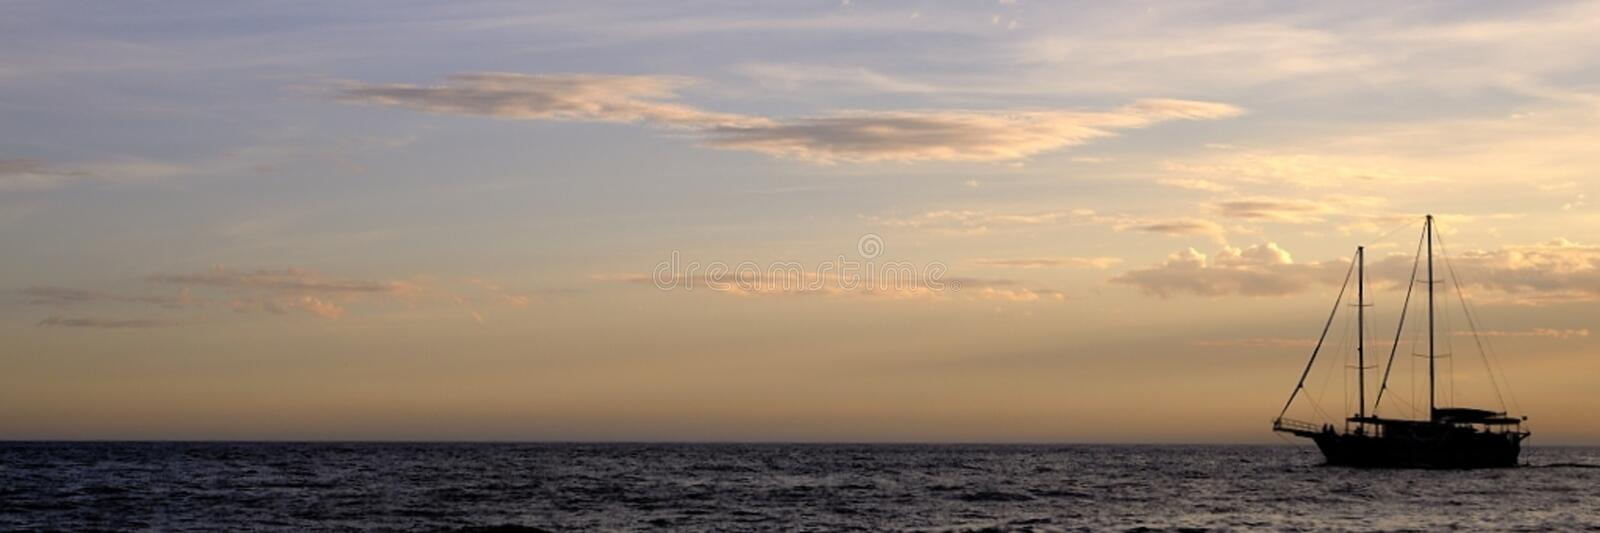 Sailboat on water at sunset royalty free stock photo